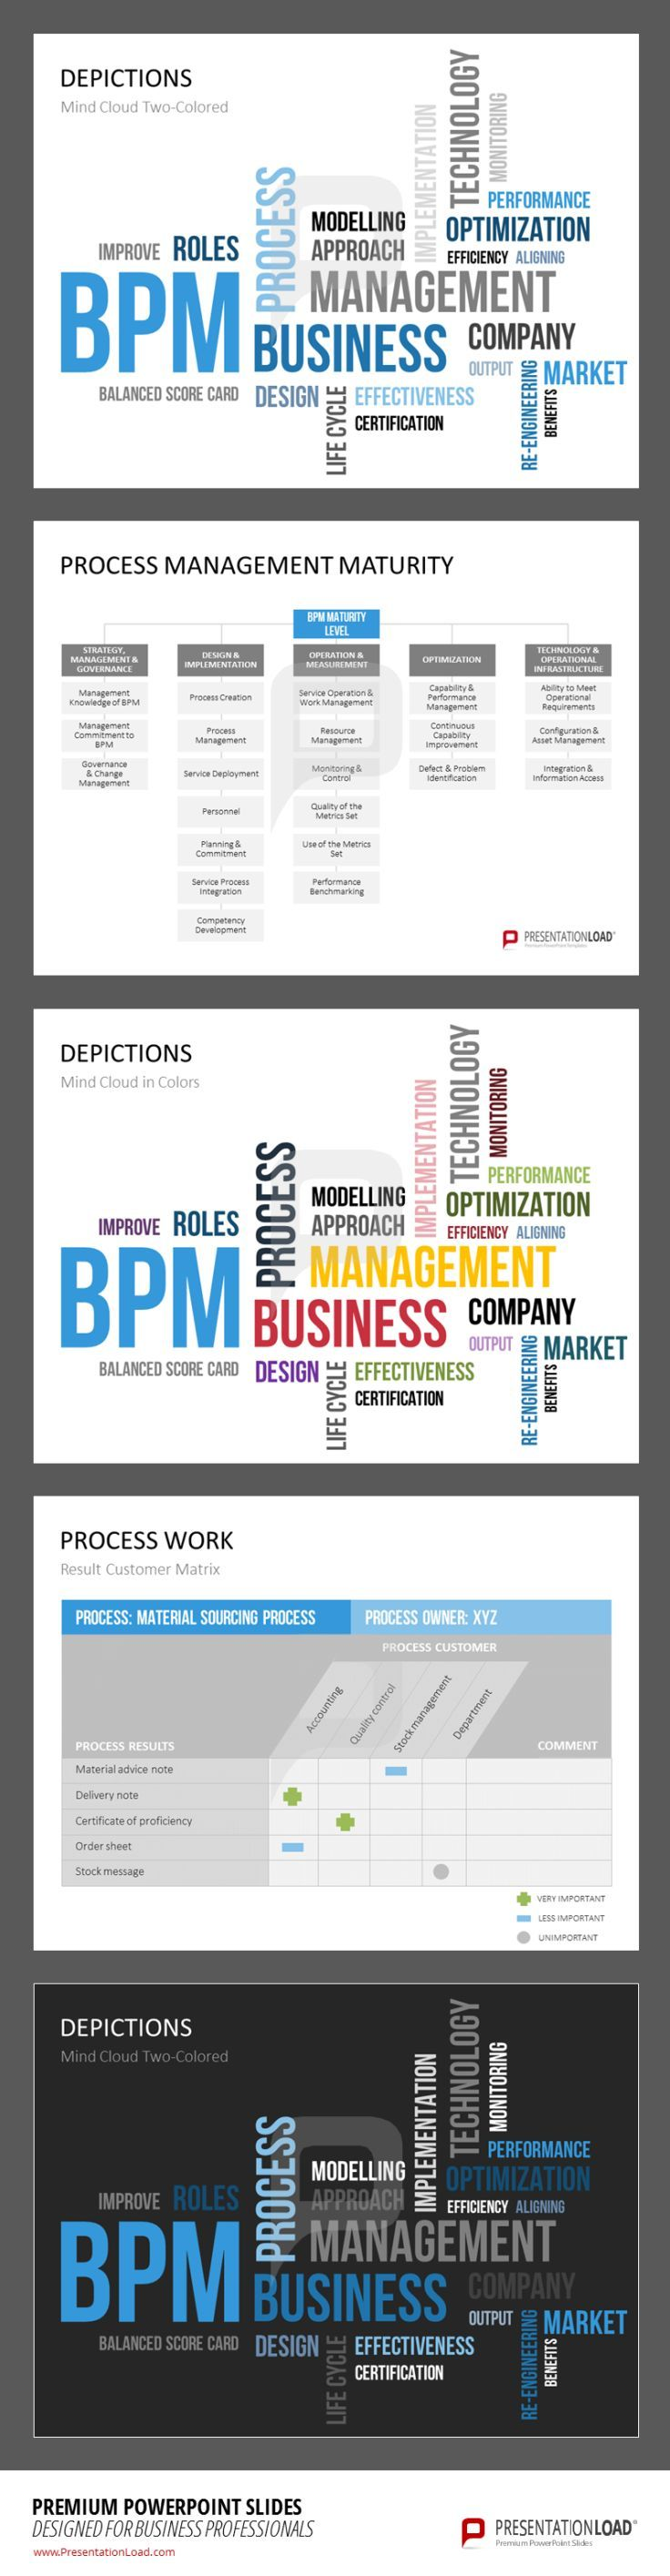 PresentationLoad Process Management PowerPoint Templates http://www.presentationload.com/process-management.html